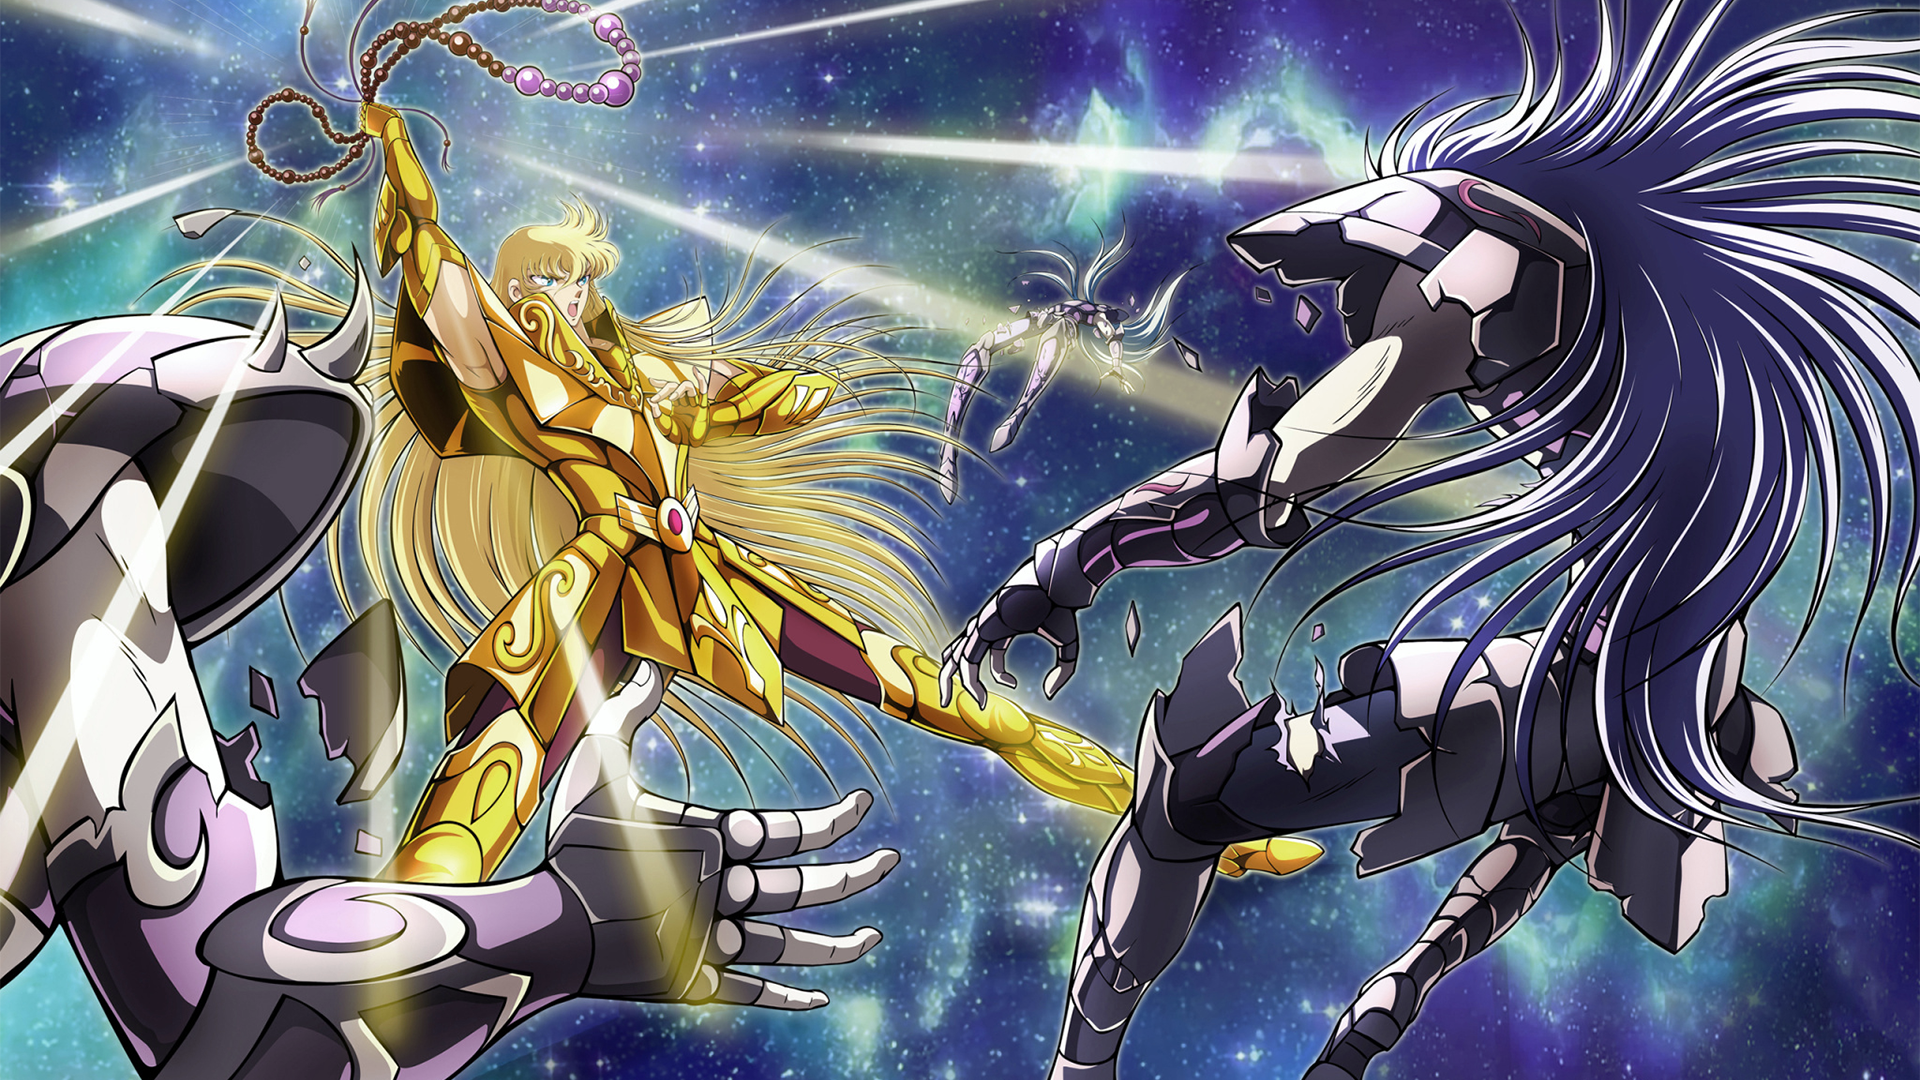 Virgo Shaka vs 3 Golden Saints HD Wallpaper